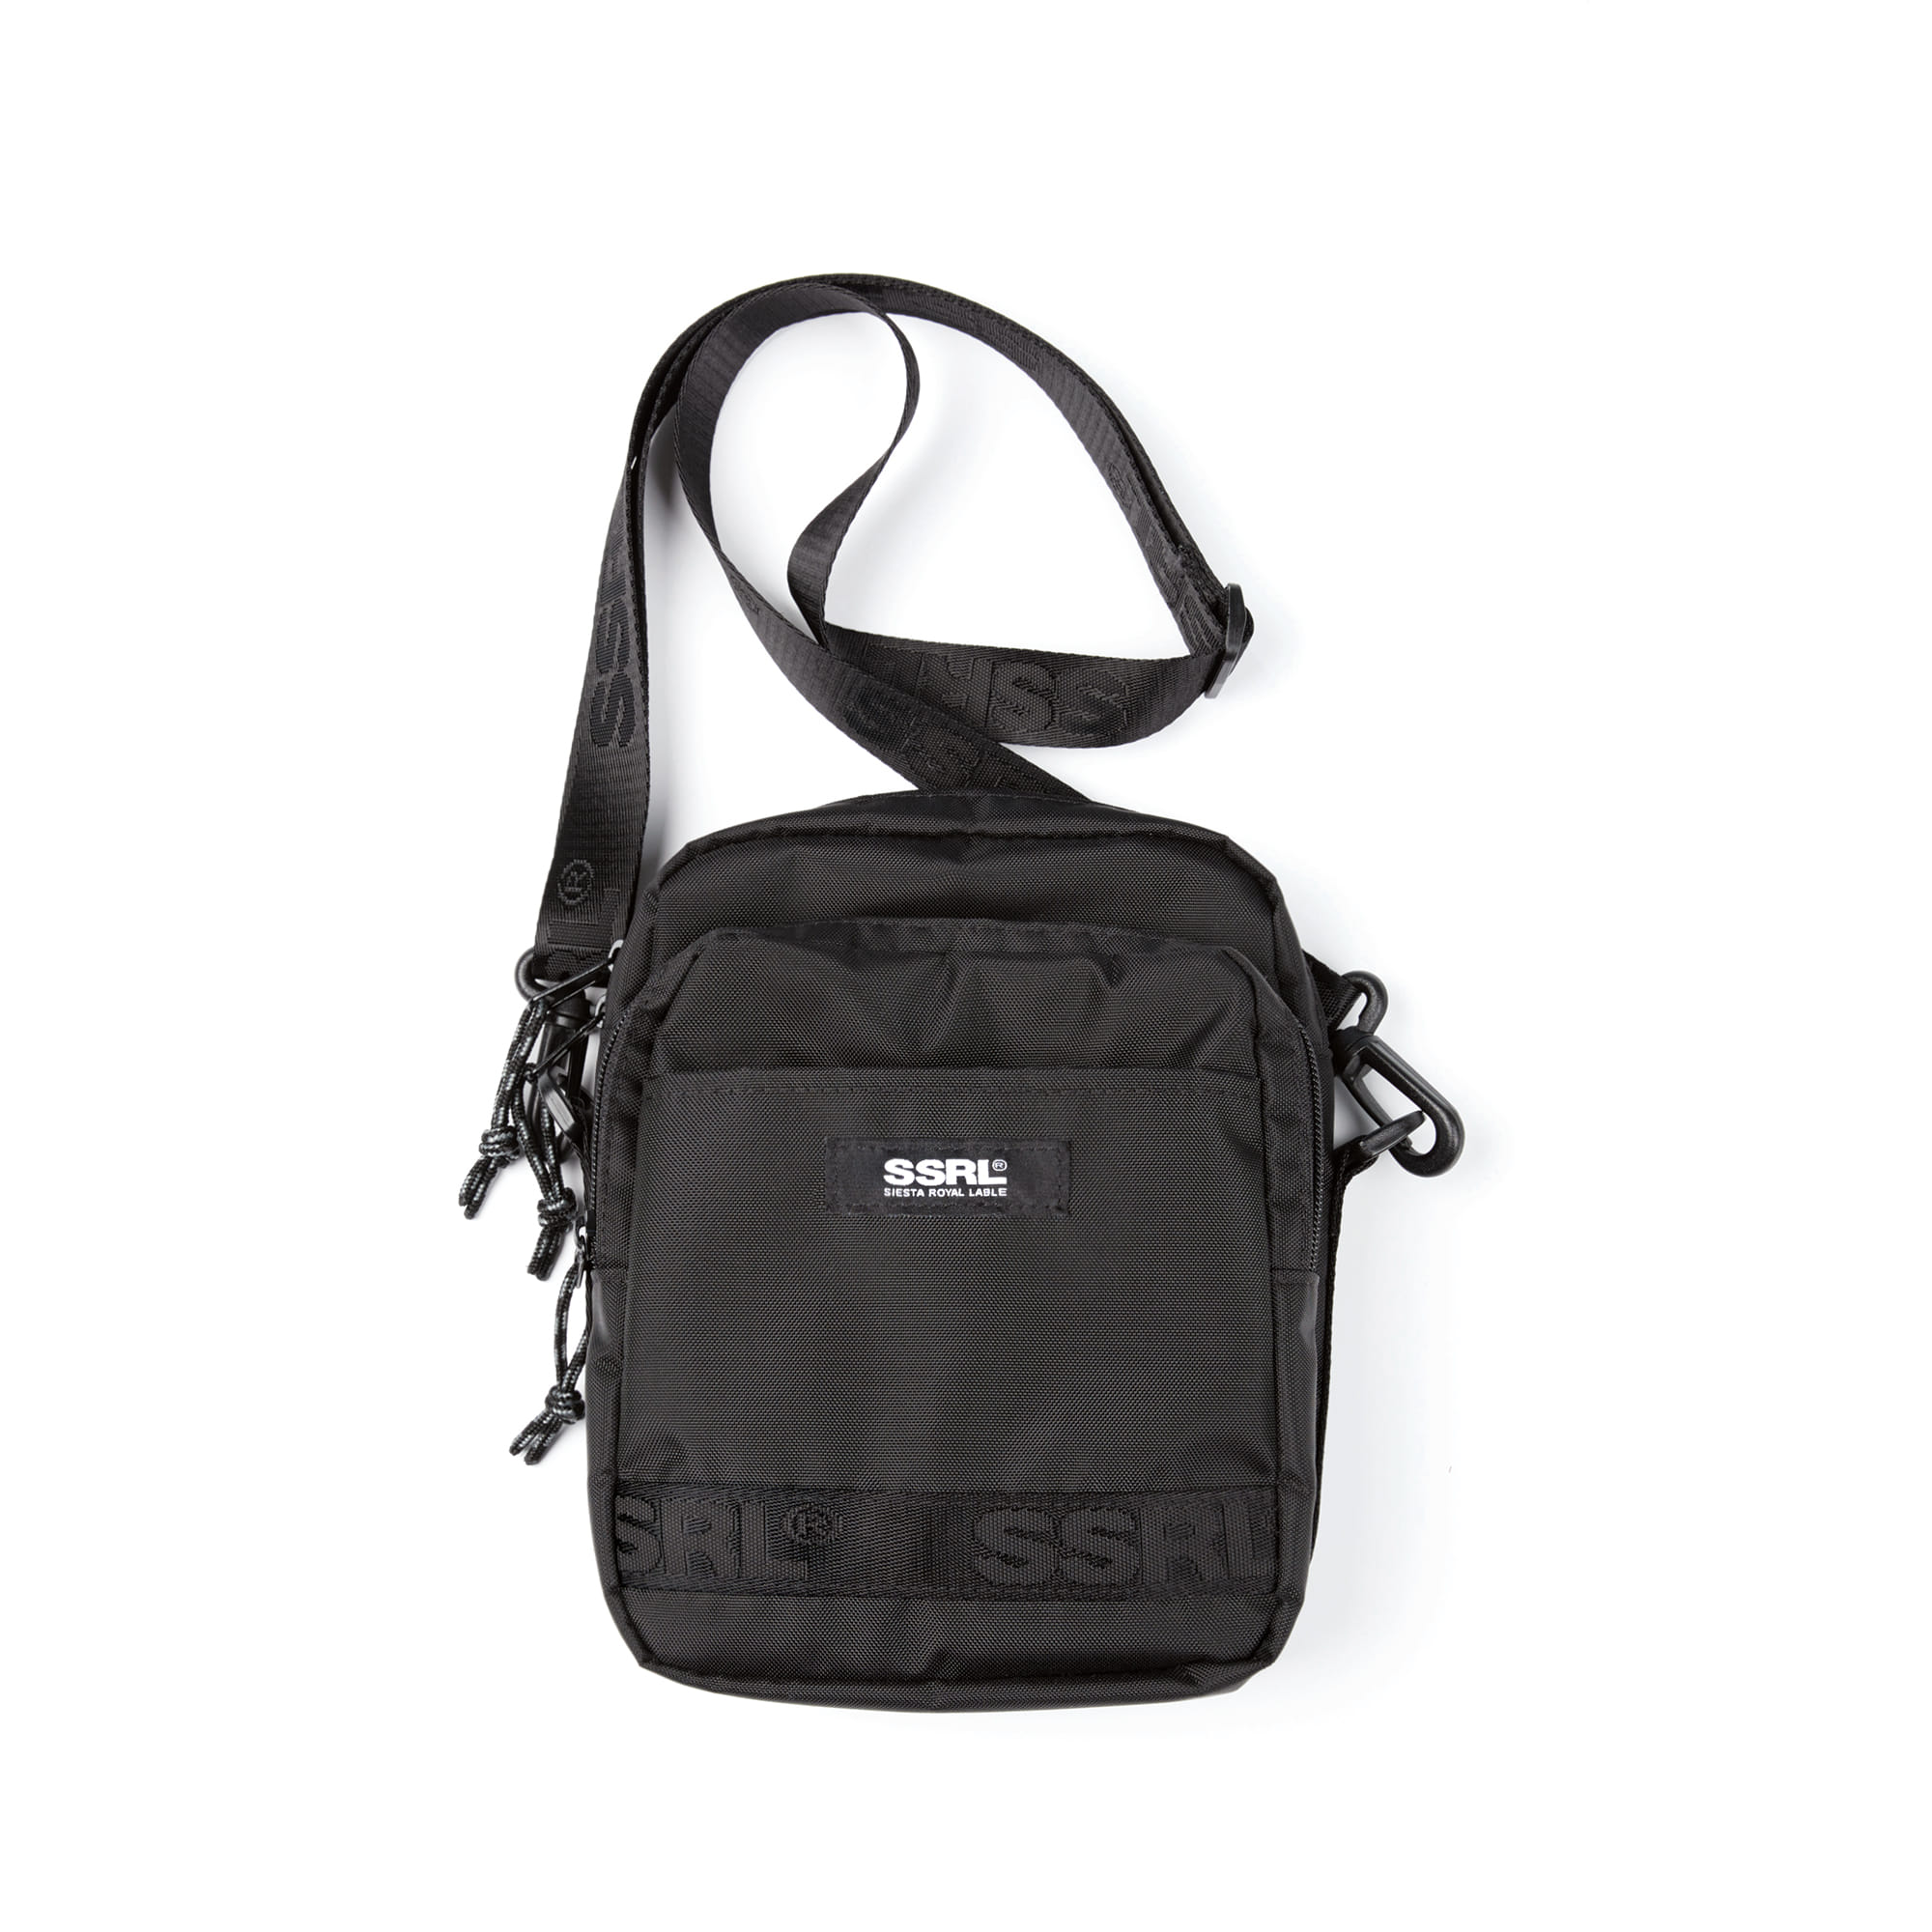 nylon cross bag / black